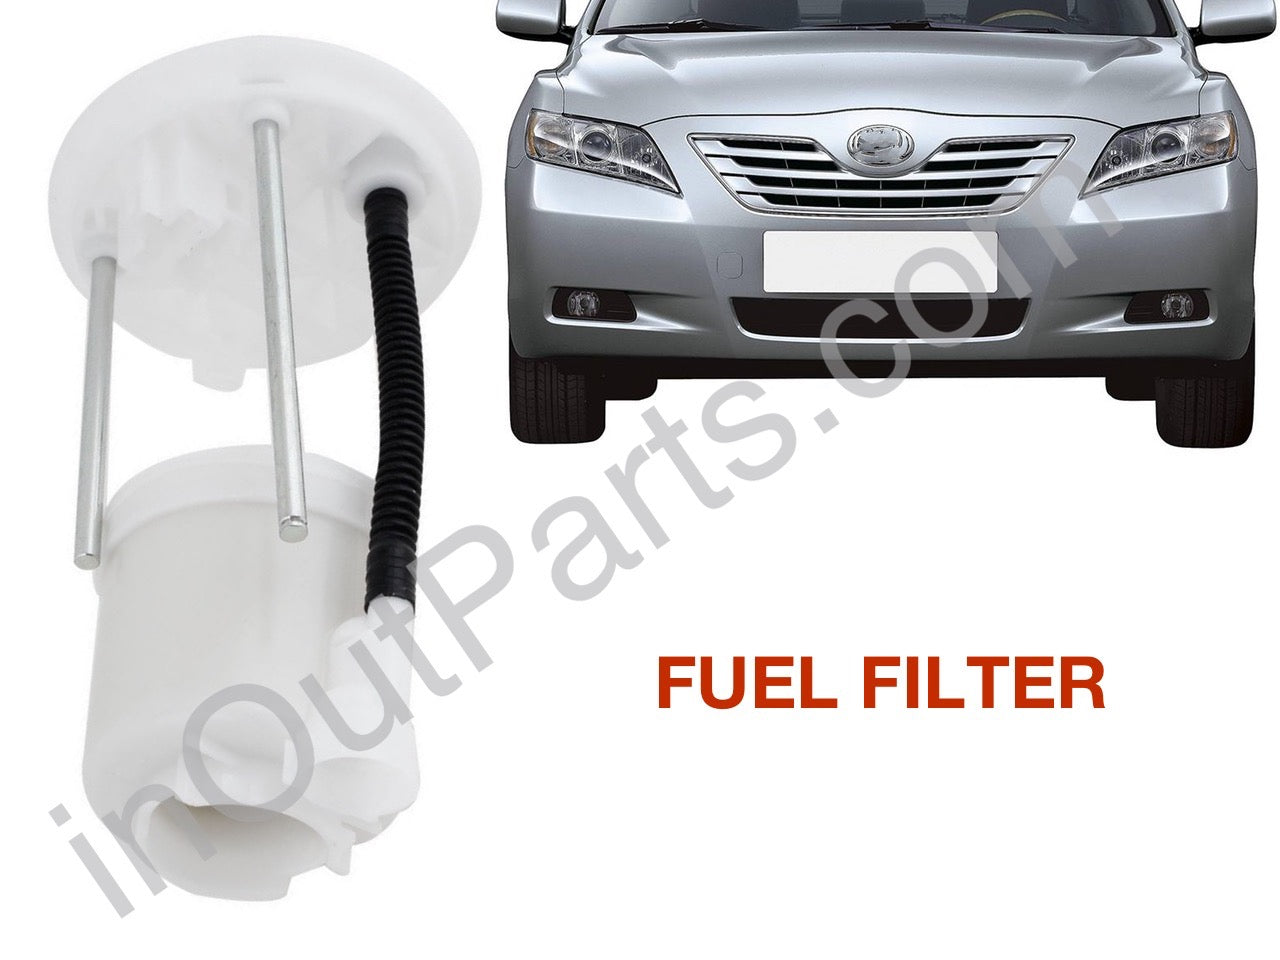 2007 Camry Fuel Filter Location Chevy Aveo Toyota Azfe 1280x960